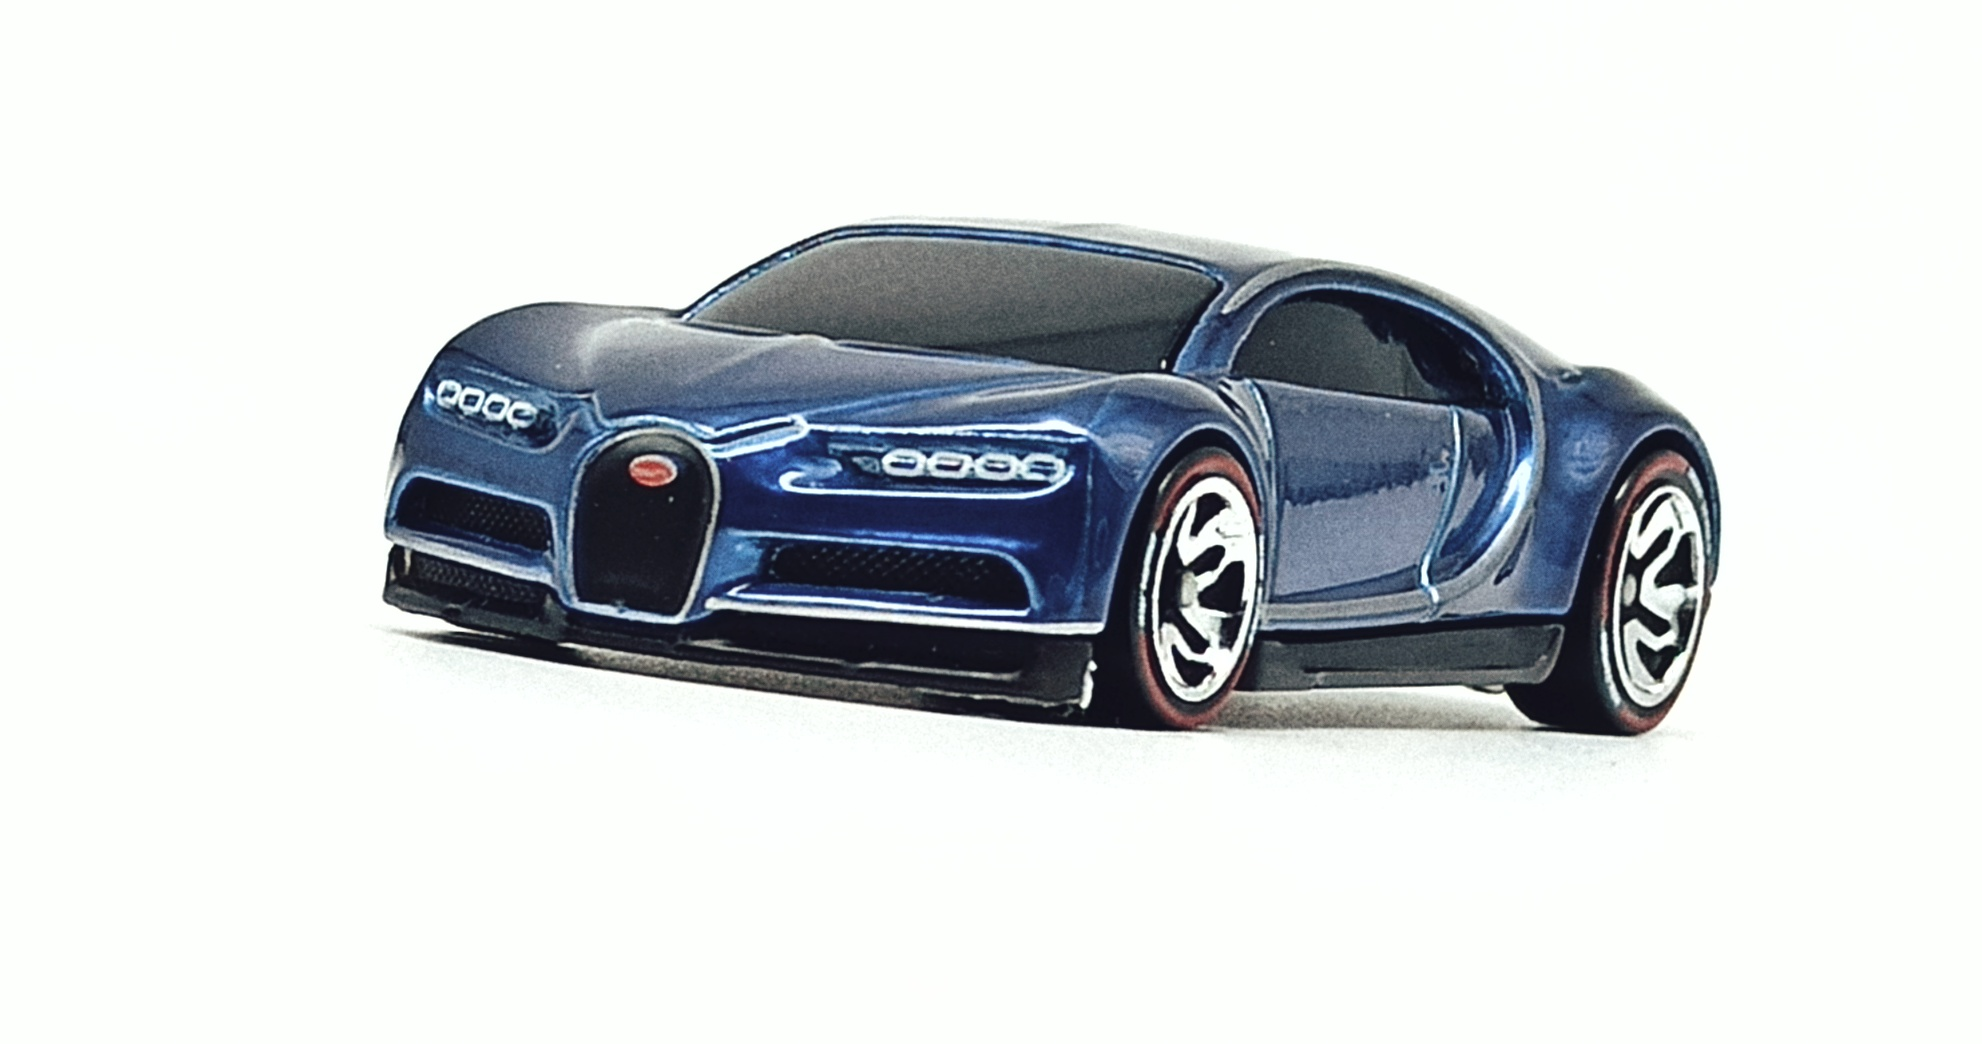 Hot Wheels id '16 Bugatti Chiron (HBG00) 2021 HW Turbo (3/4) spectraflame blue front view